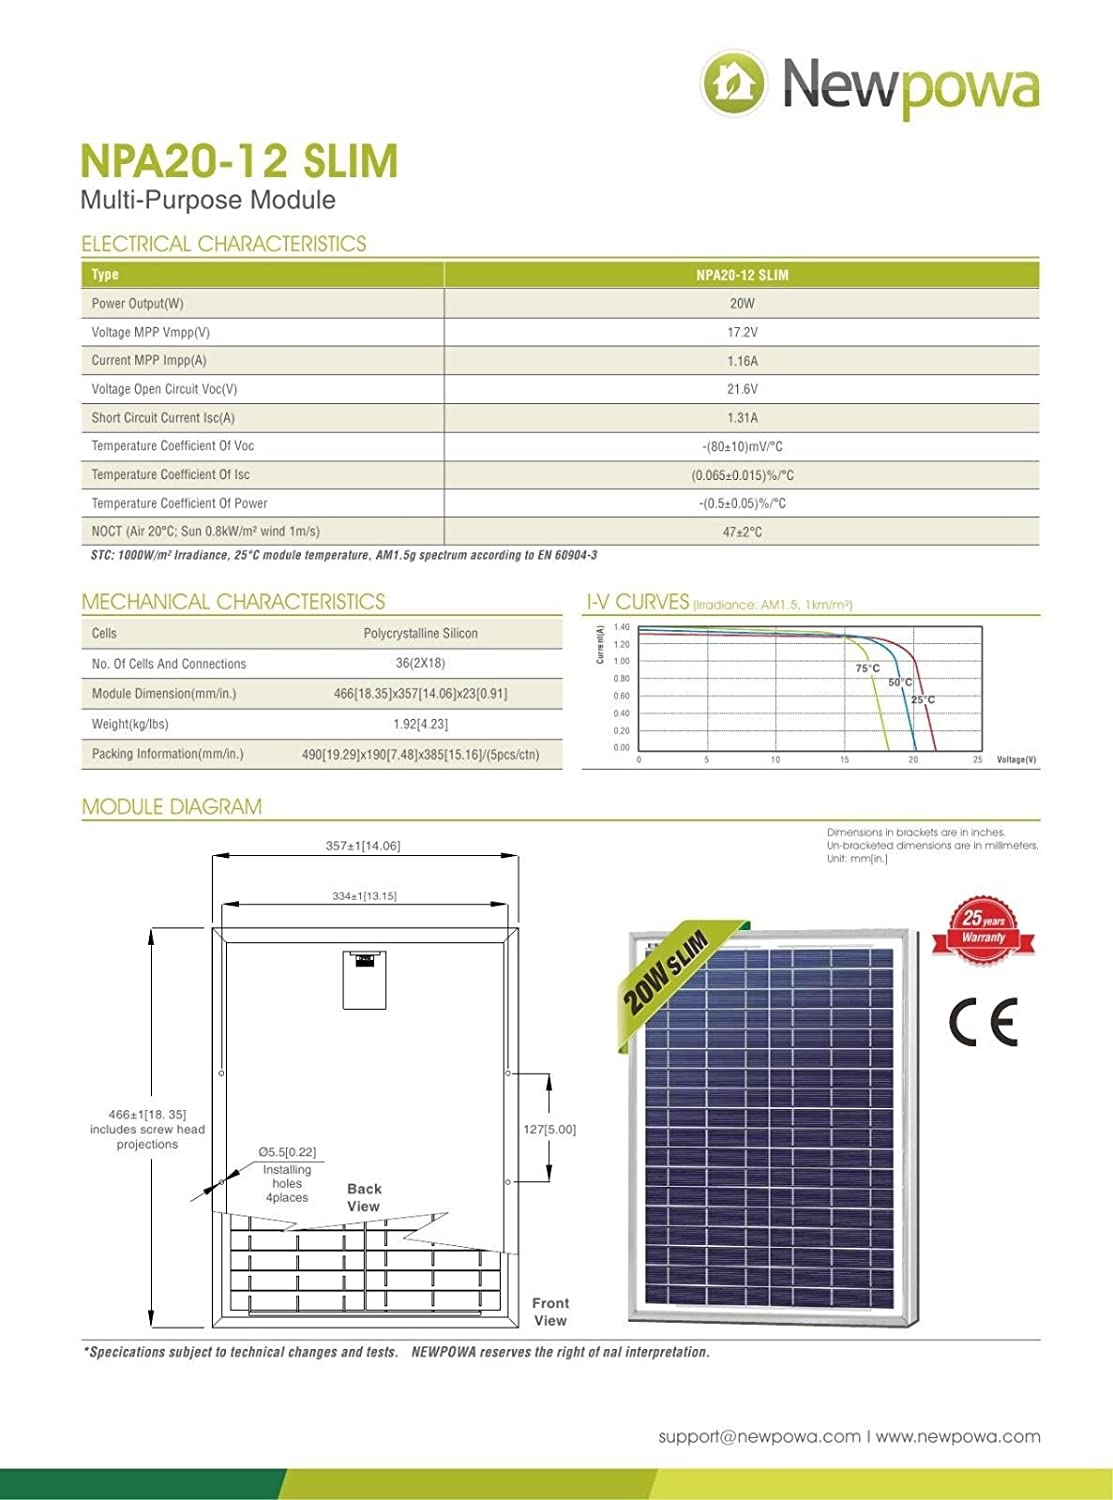 Newpowa 20w Watts 12v Poly Solar Panel Module Rv Marine Boat Off Wiring Diagram Grid Npa20 12